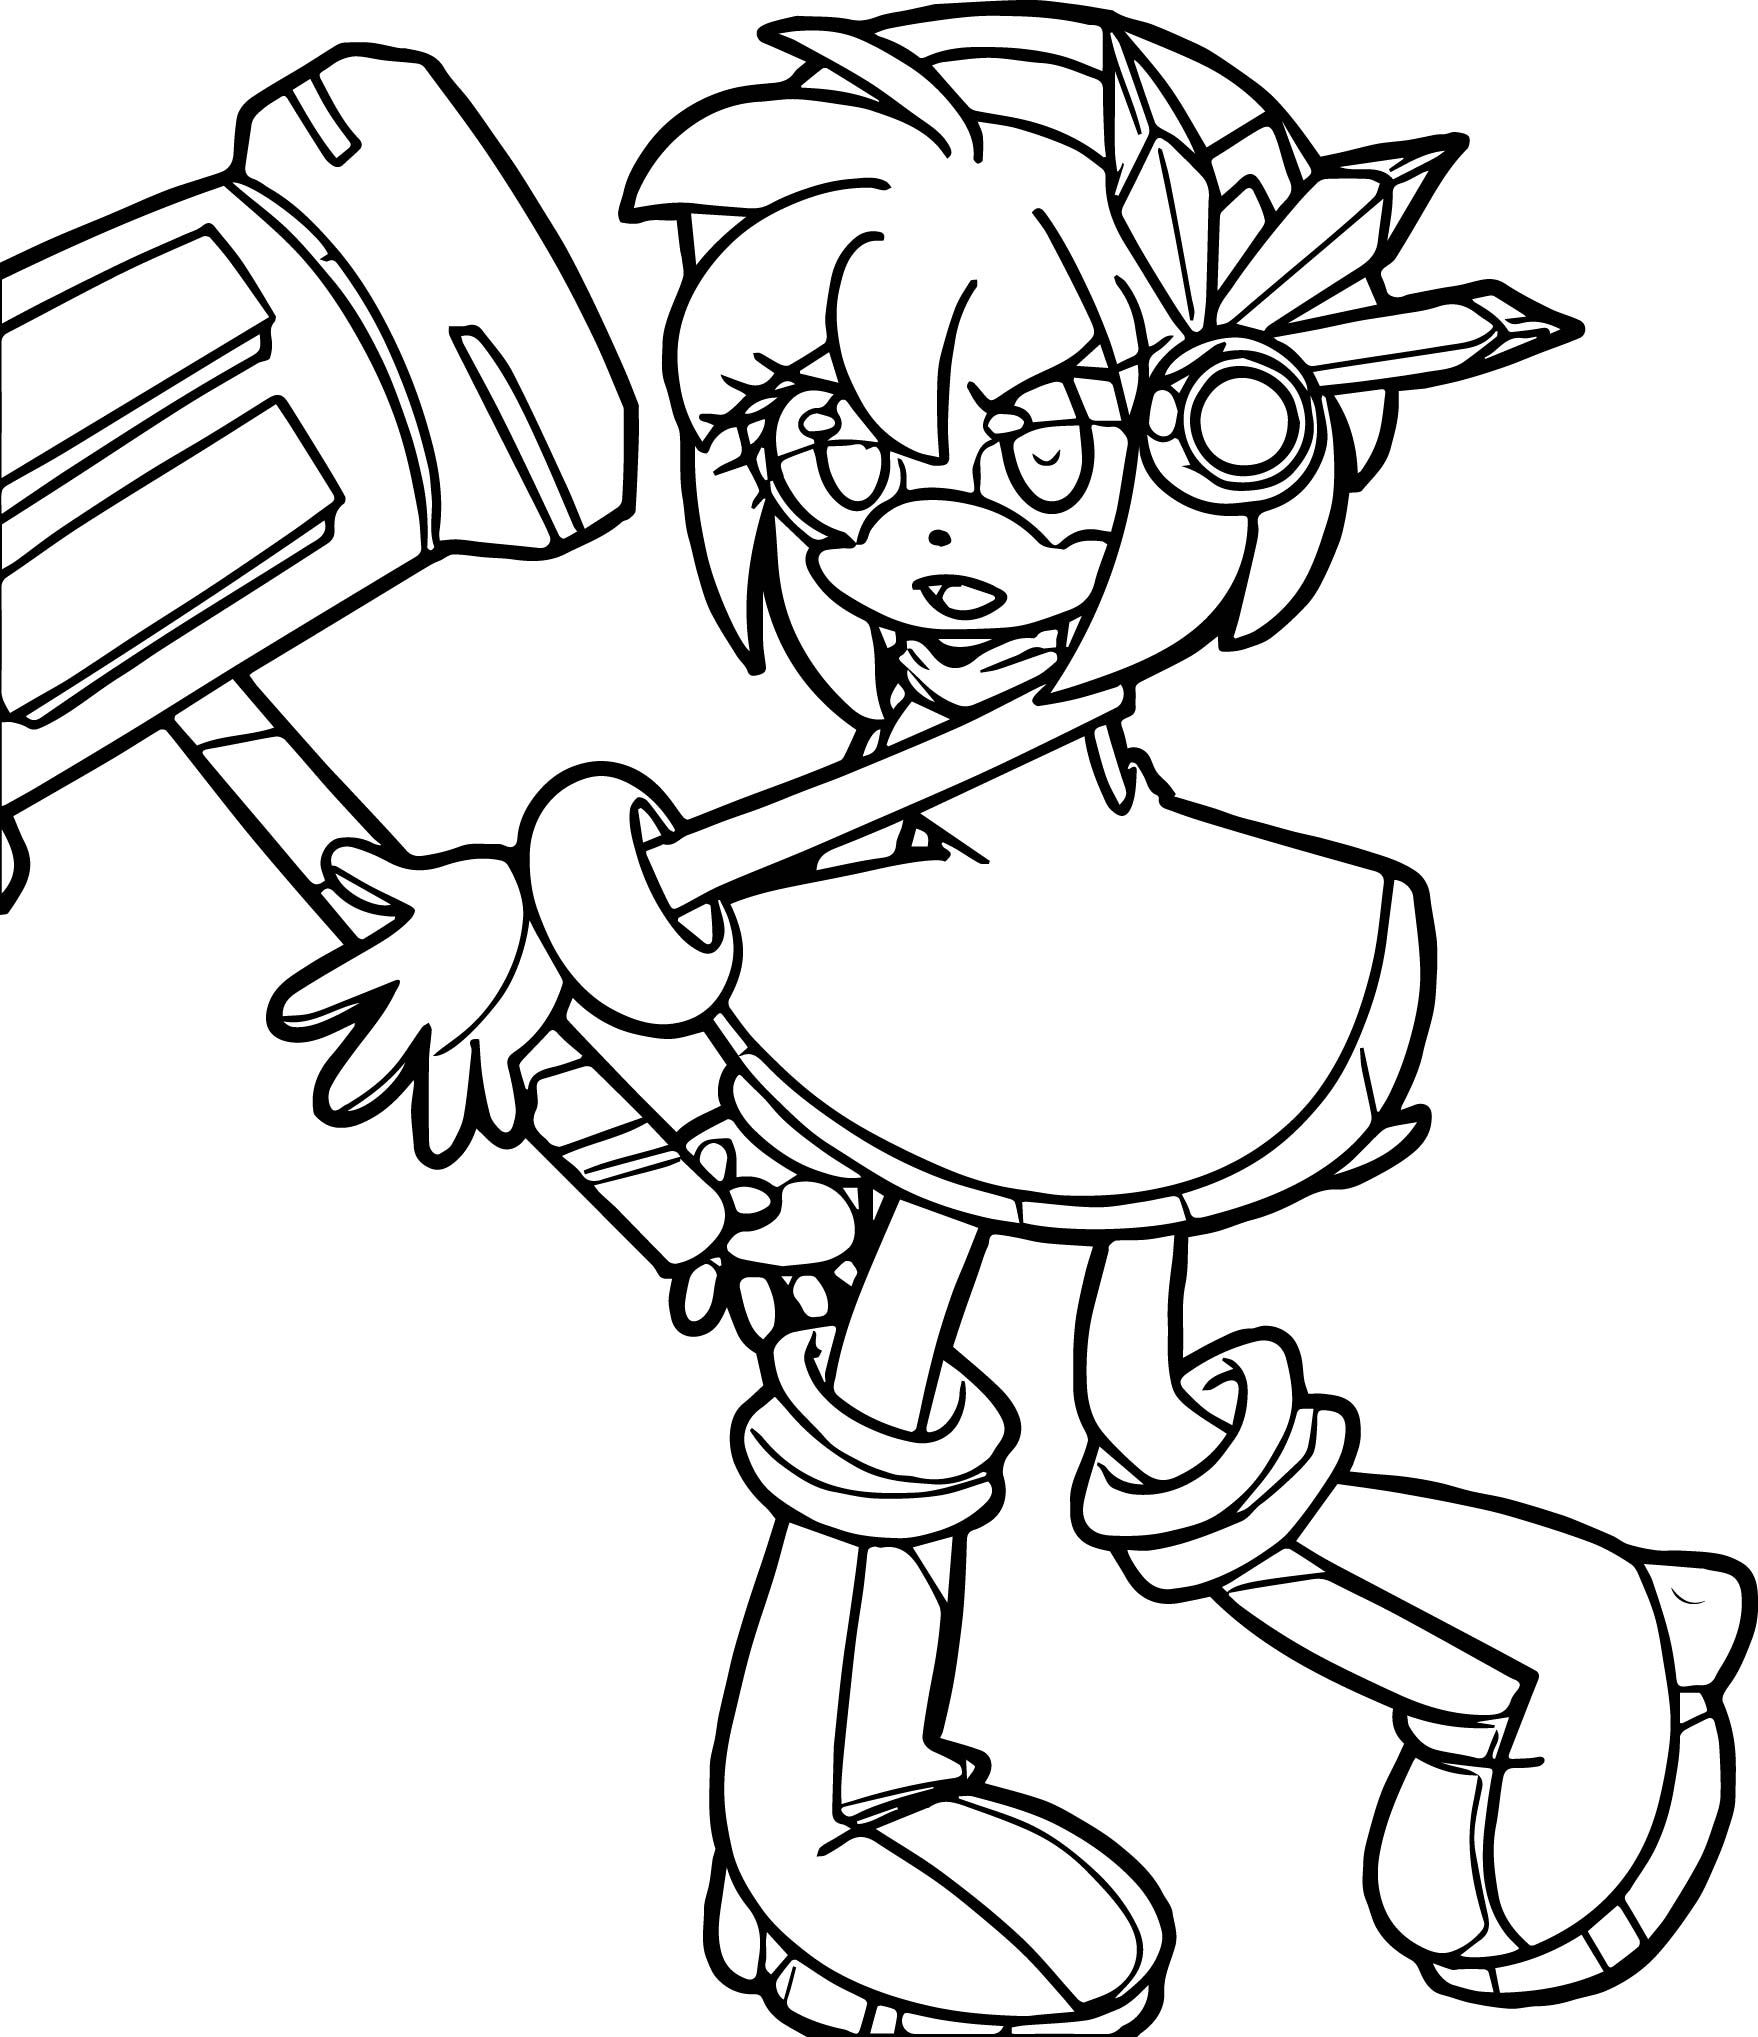 Amy Rose Come Coloring Page